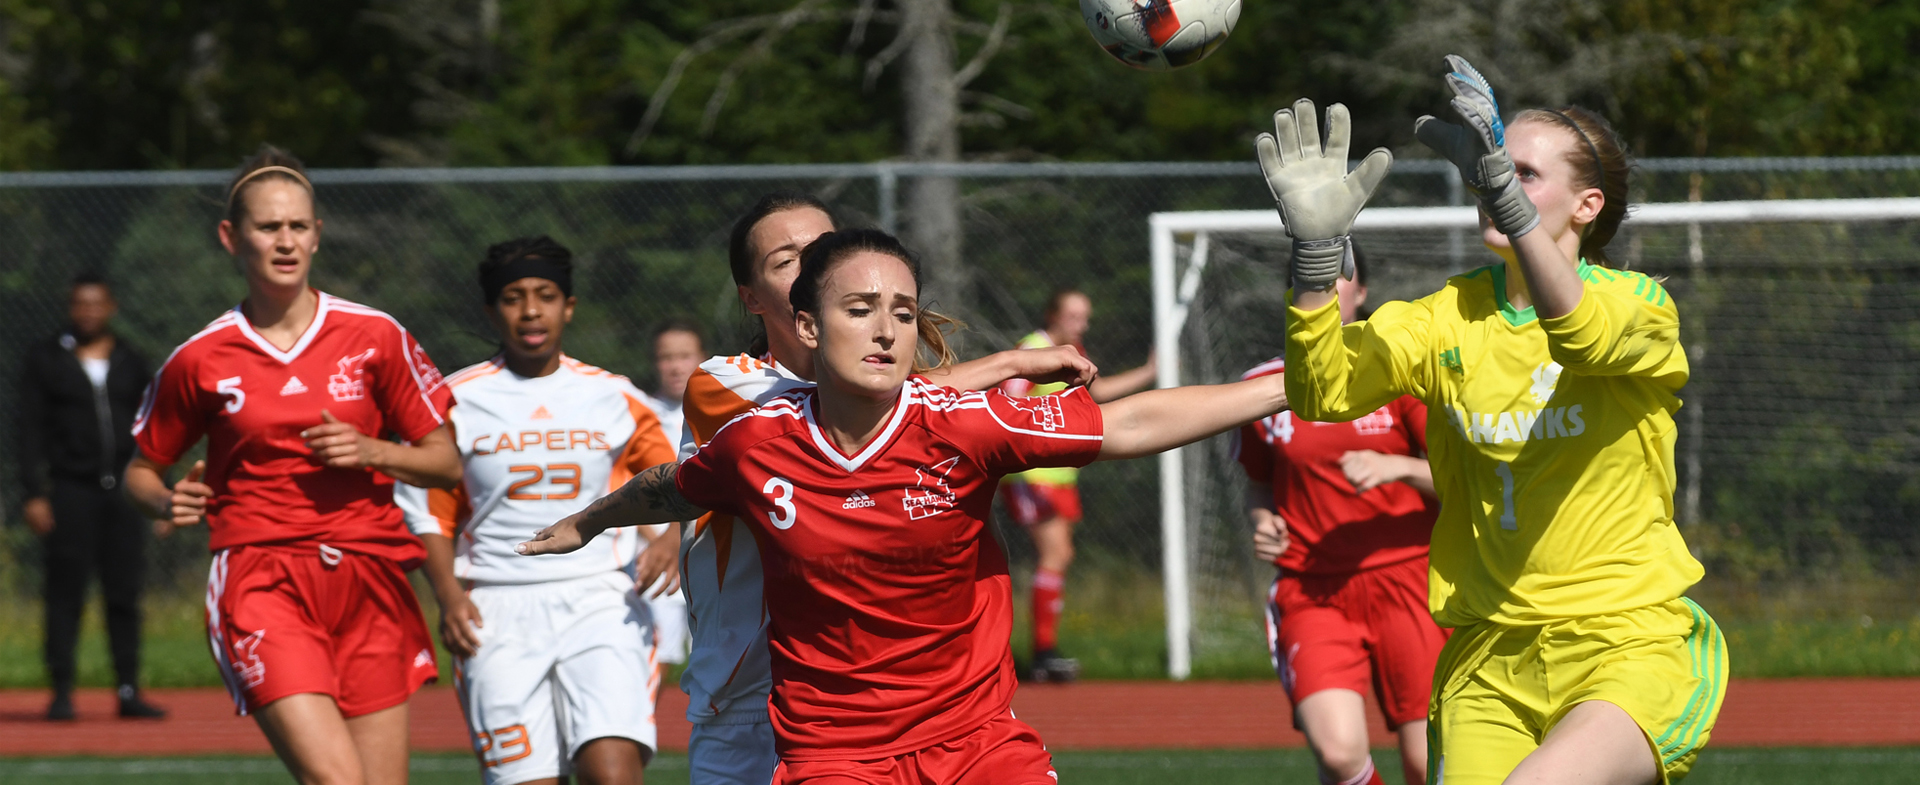 Sea-Hawks Drop First Game of the Season